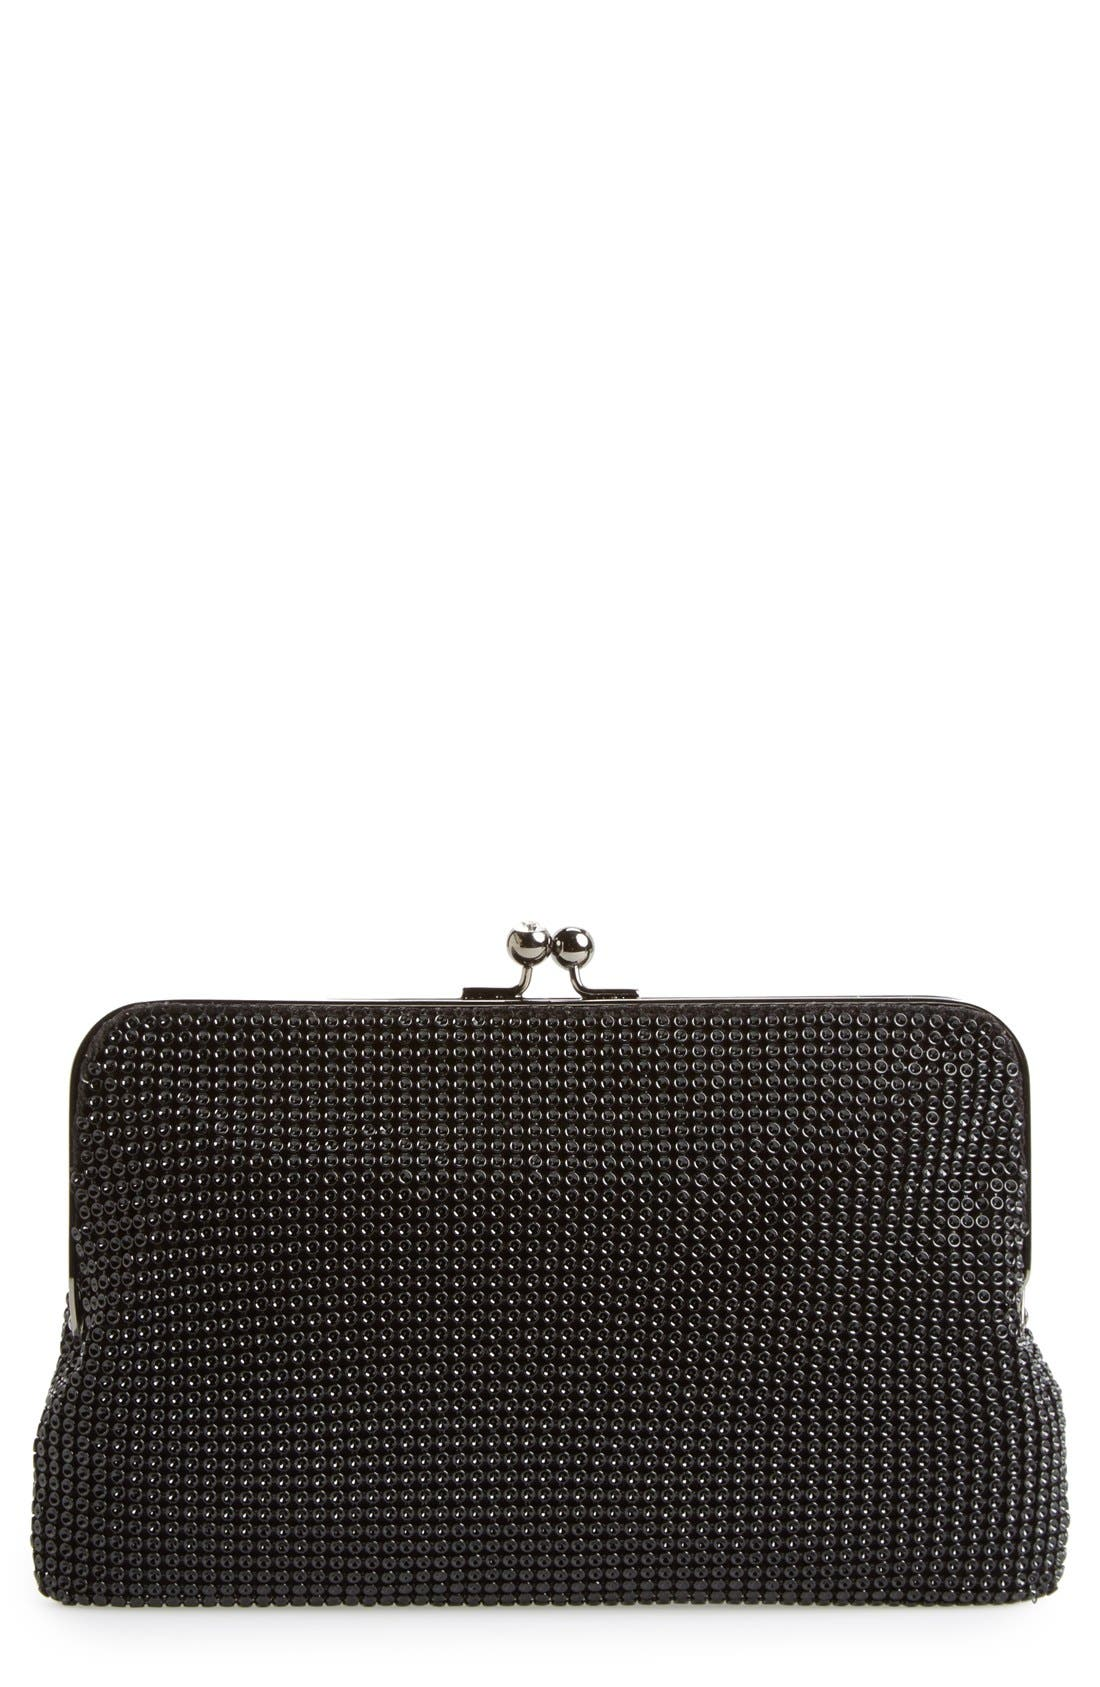 Vintage & Retro Handbags, Purses, Wallets, Bags Whiting  Davis Mesh Clutch - Black $155.00 AT vintagedancer.com